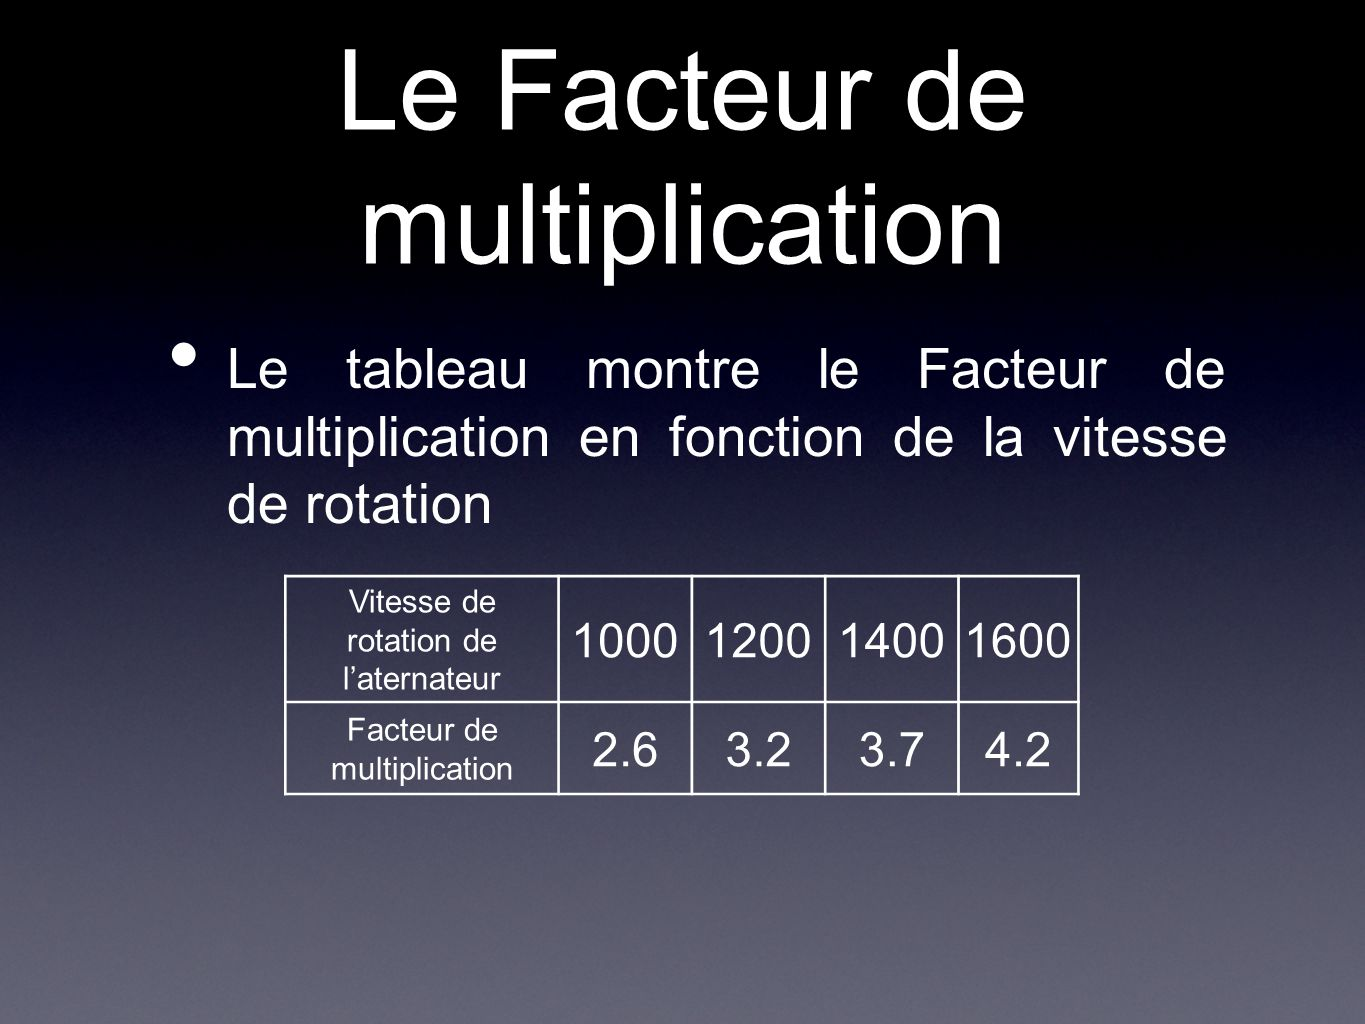 Le Facteur de multiplication